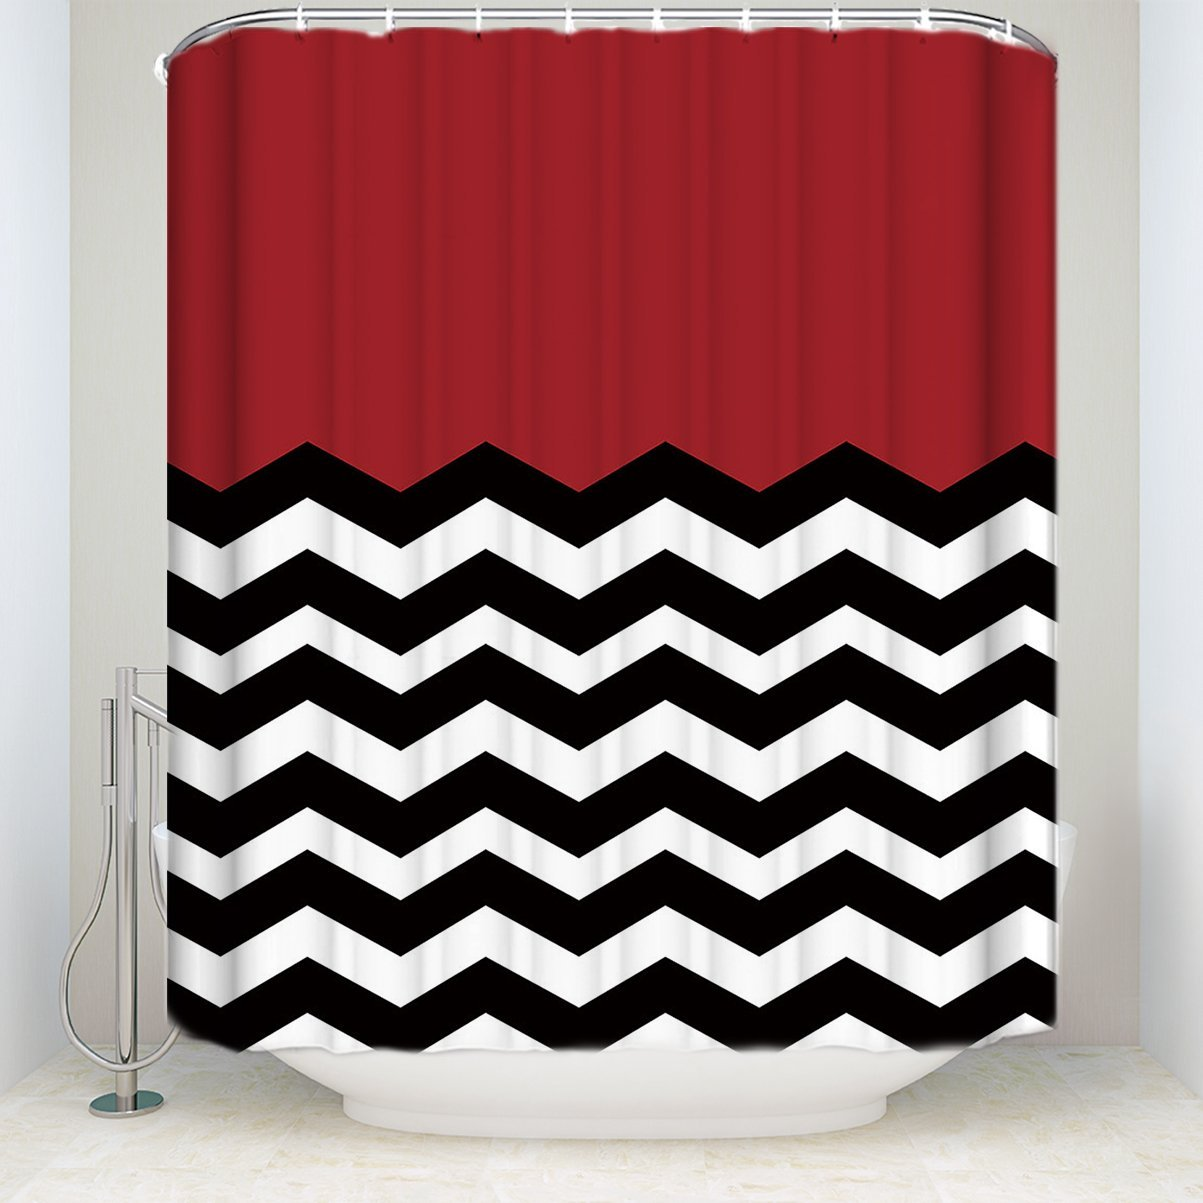 lb gold love shower curtain classic design black and white striped shower curtain waterproof fabric bathroom decor 60x72 inch with hooks shower curtain sets home kitchen